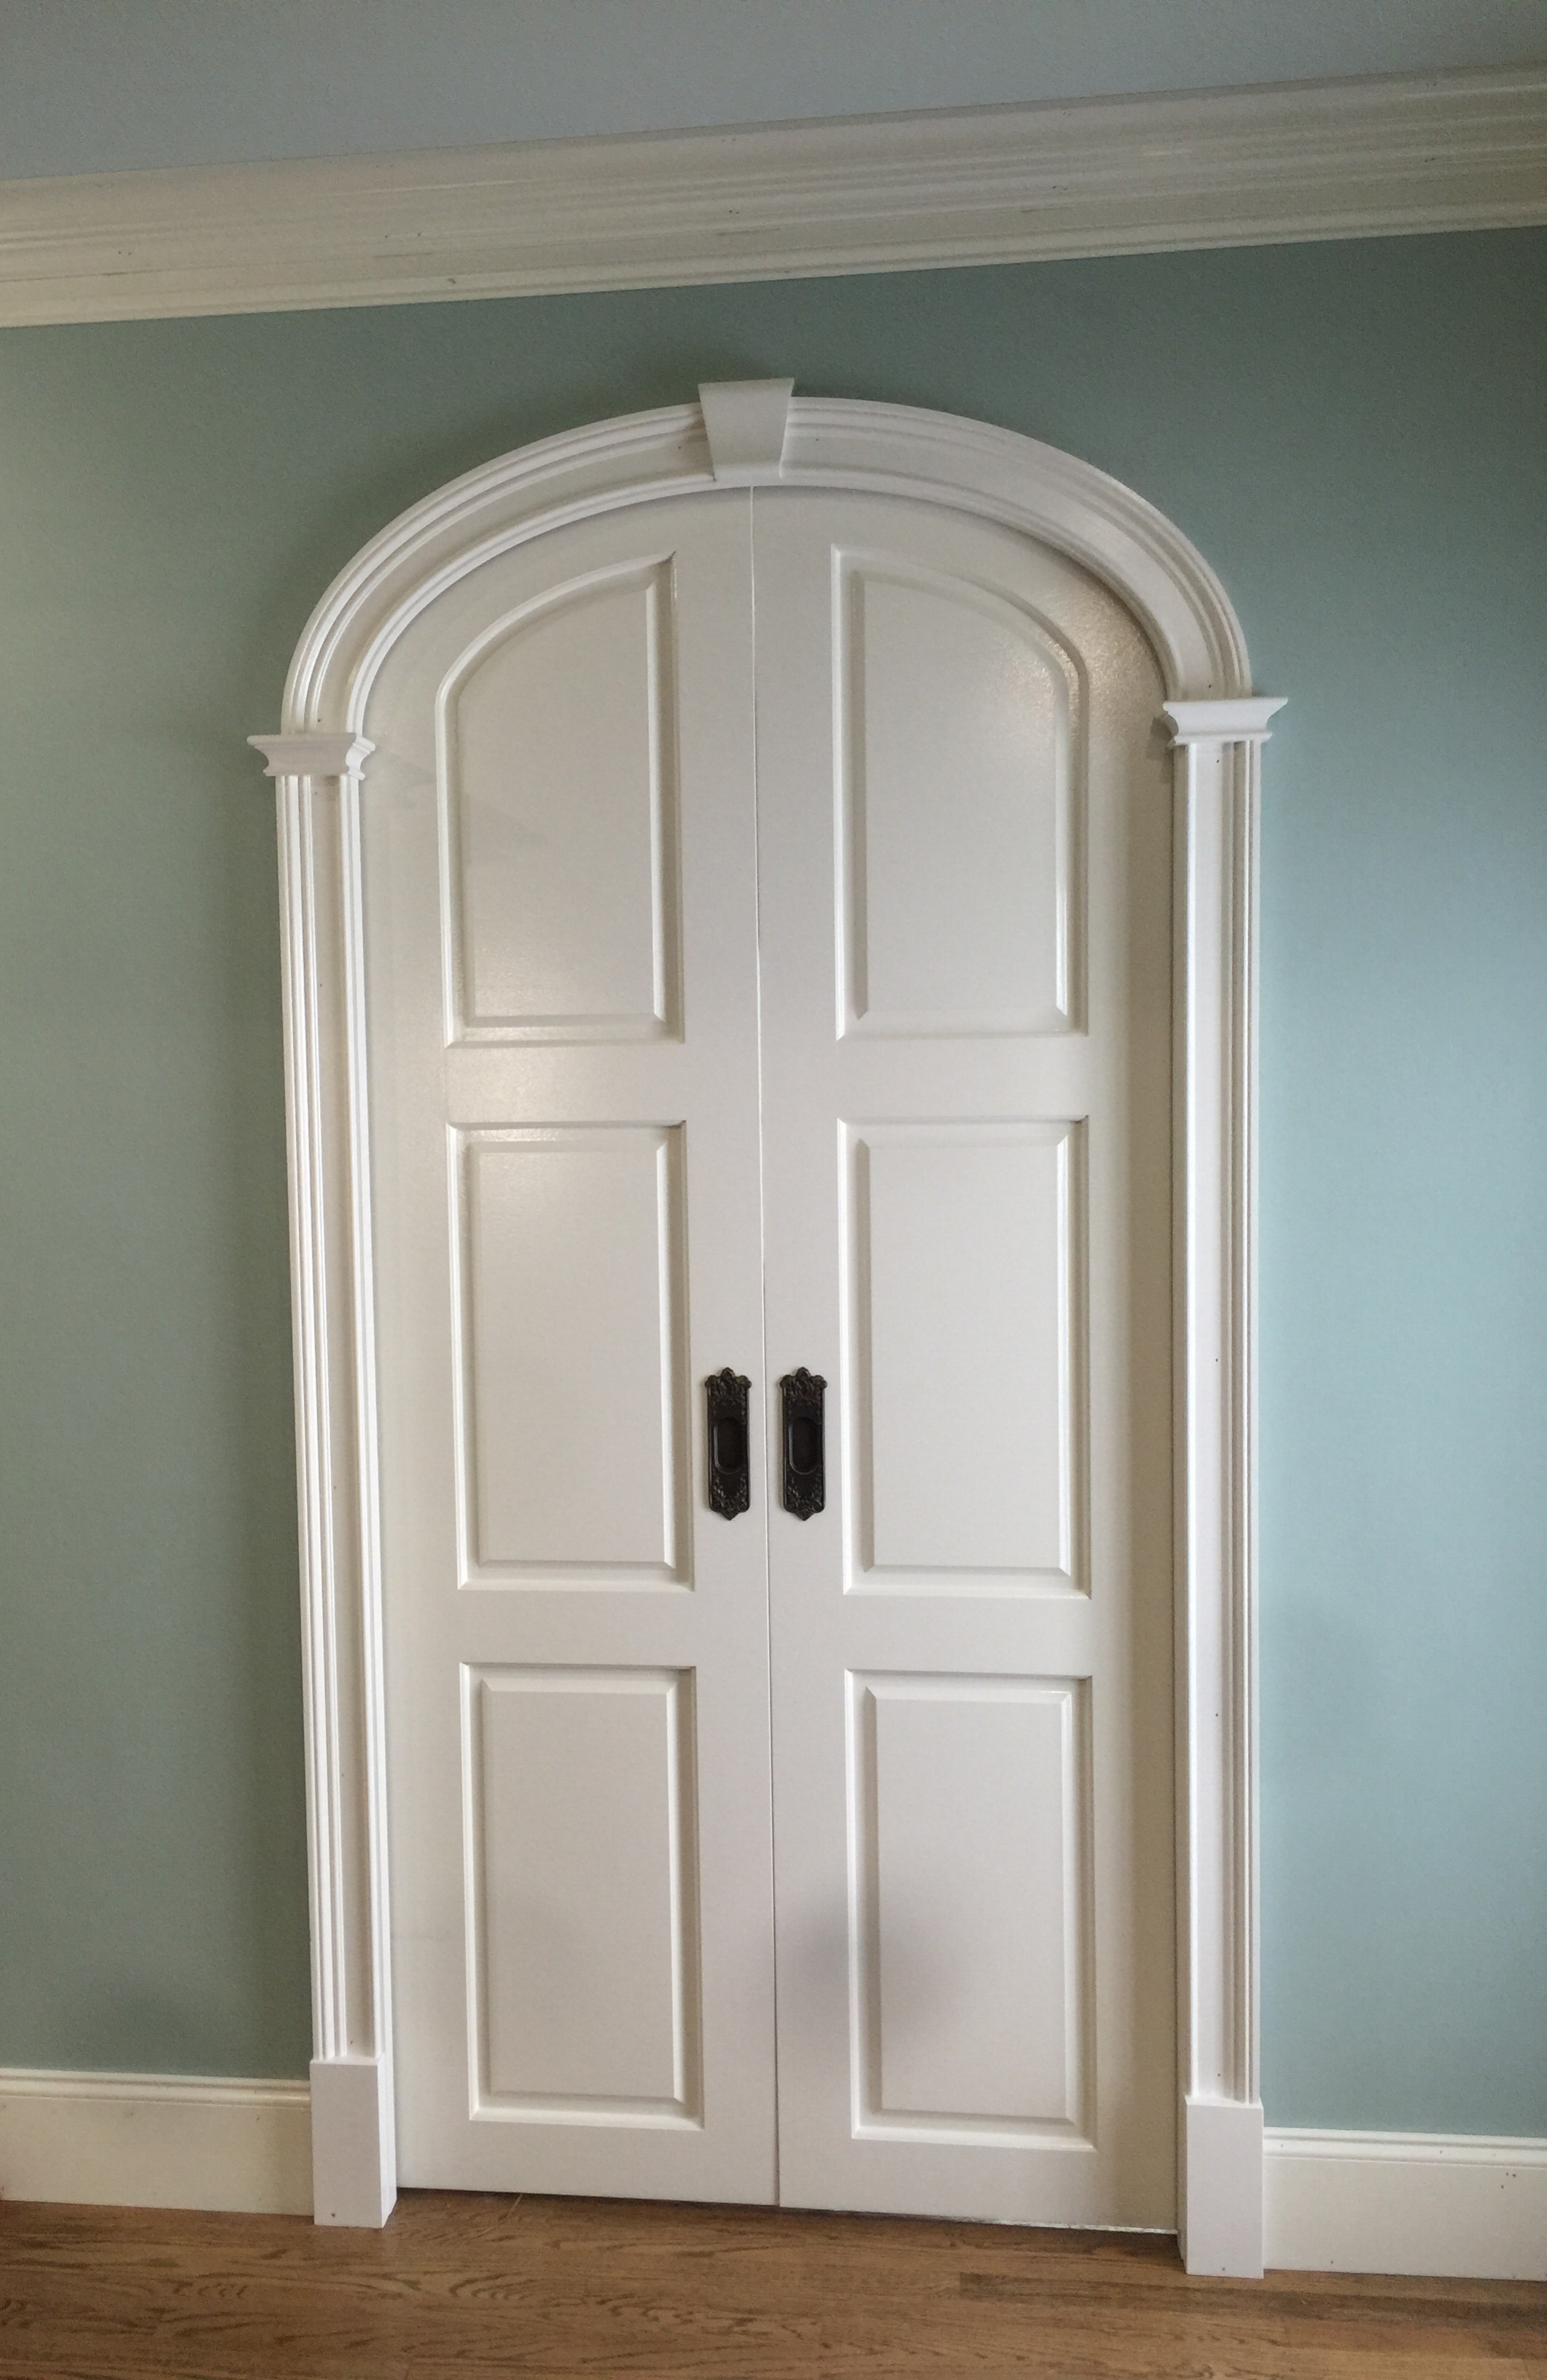 arched pocket doors - prefab arch kit split to fit concentric panel pocket doors!